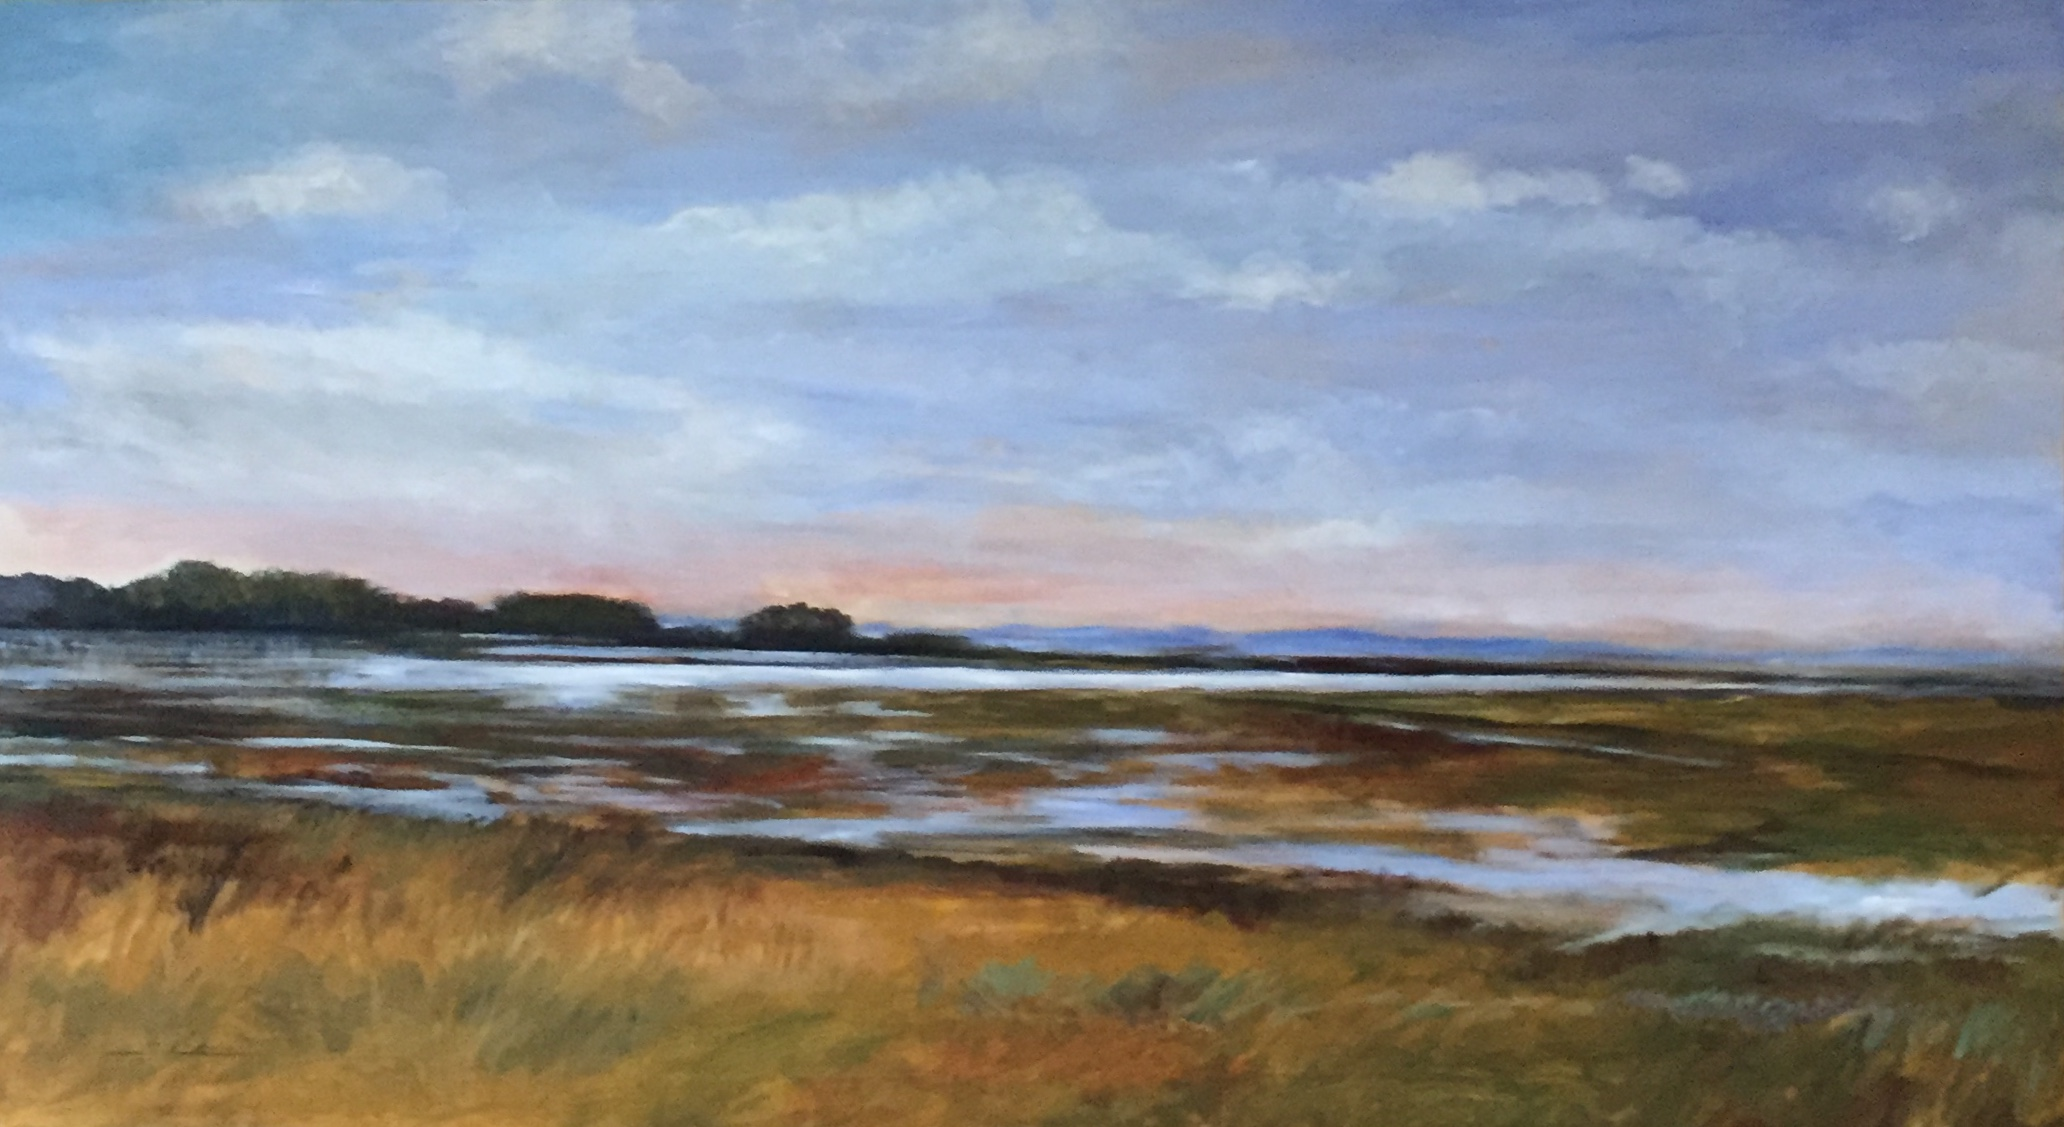 Acrylic painting of Indian River Bay marshlands